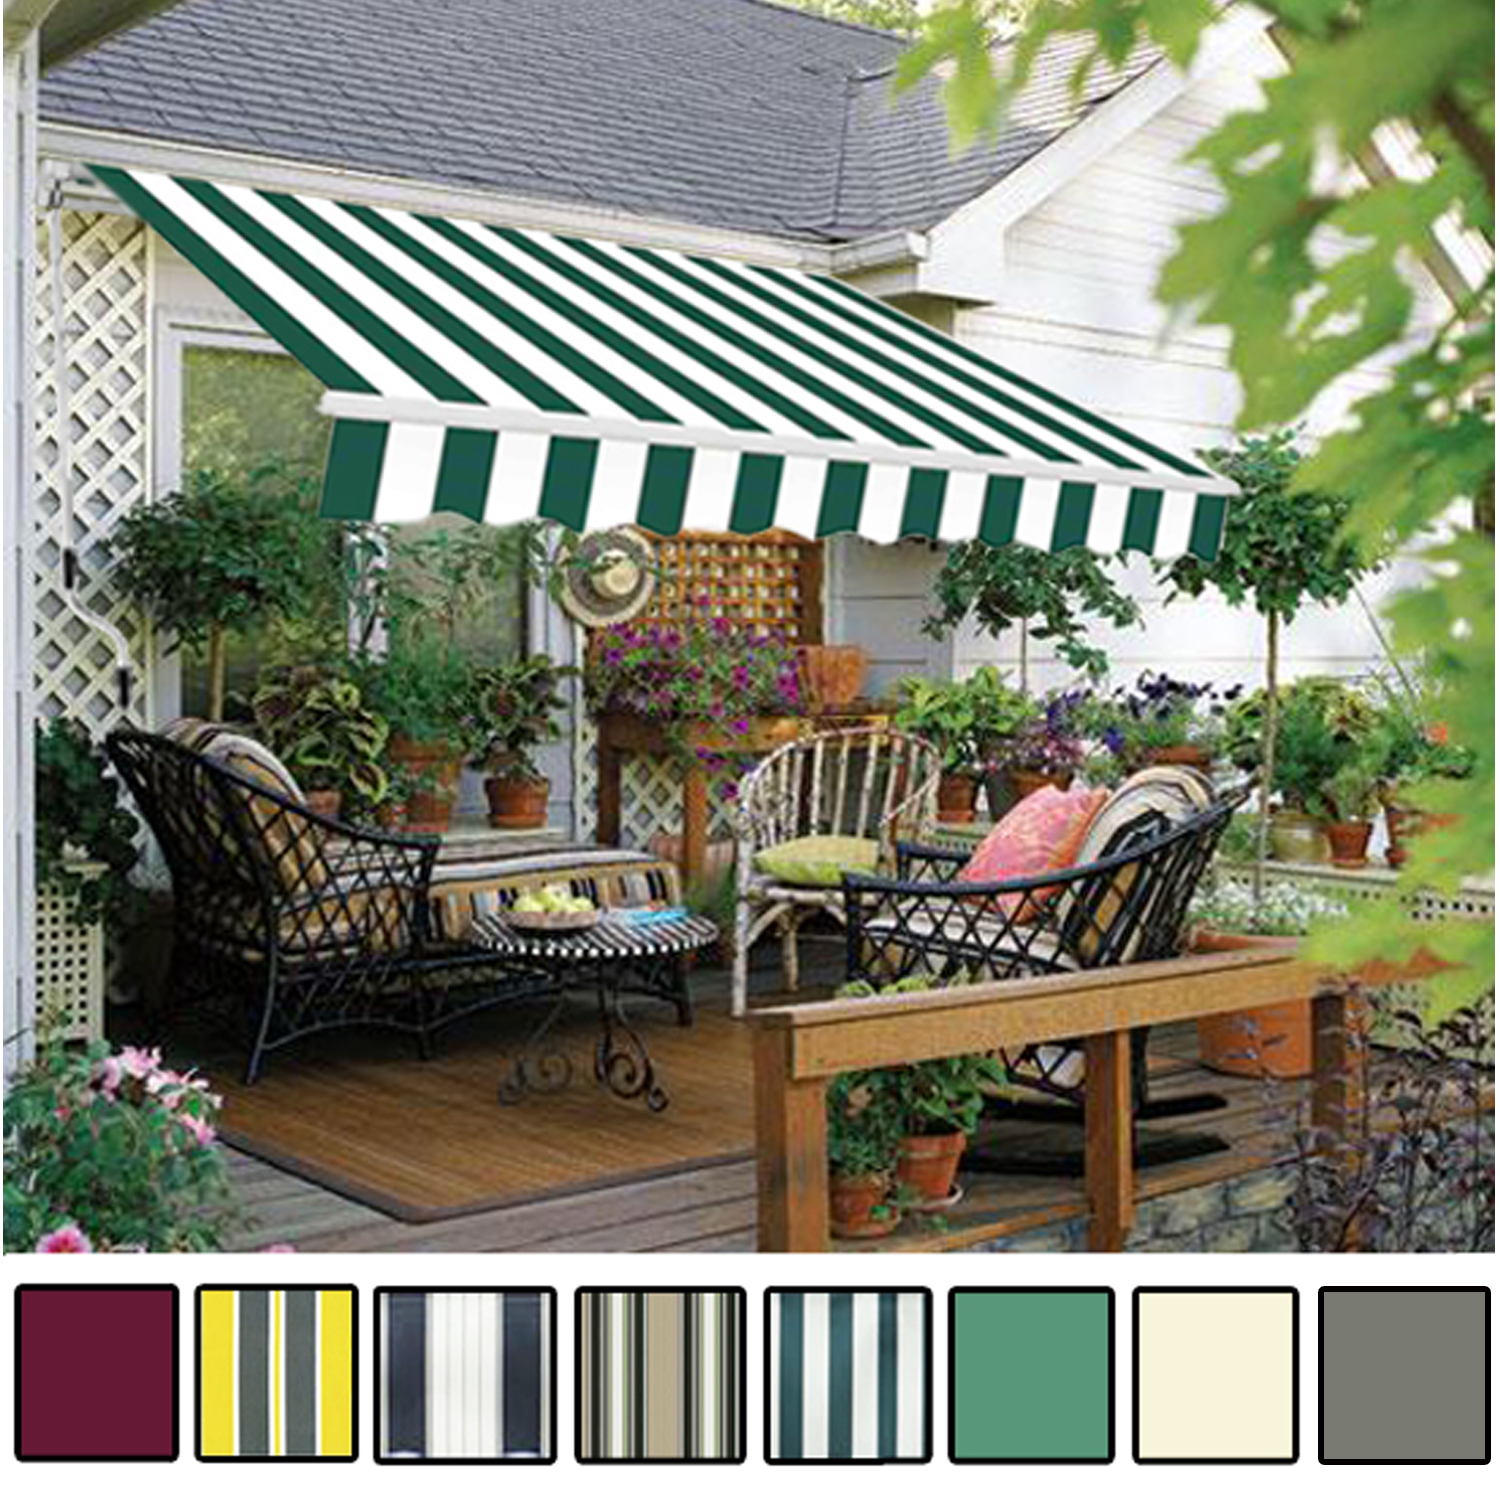 covers canopy shade g awning year awnings deck cover bright asphalt for